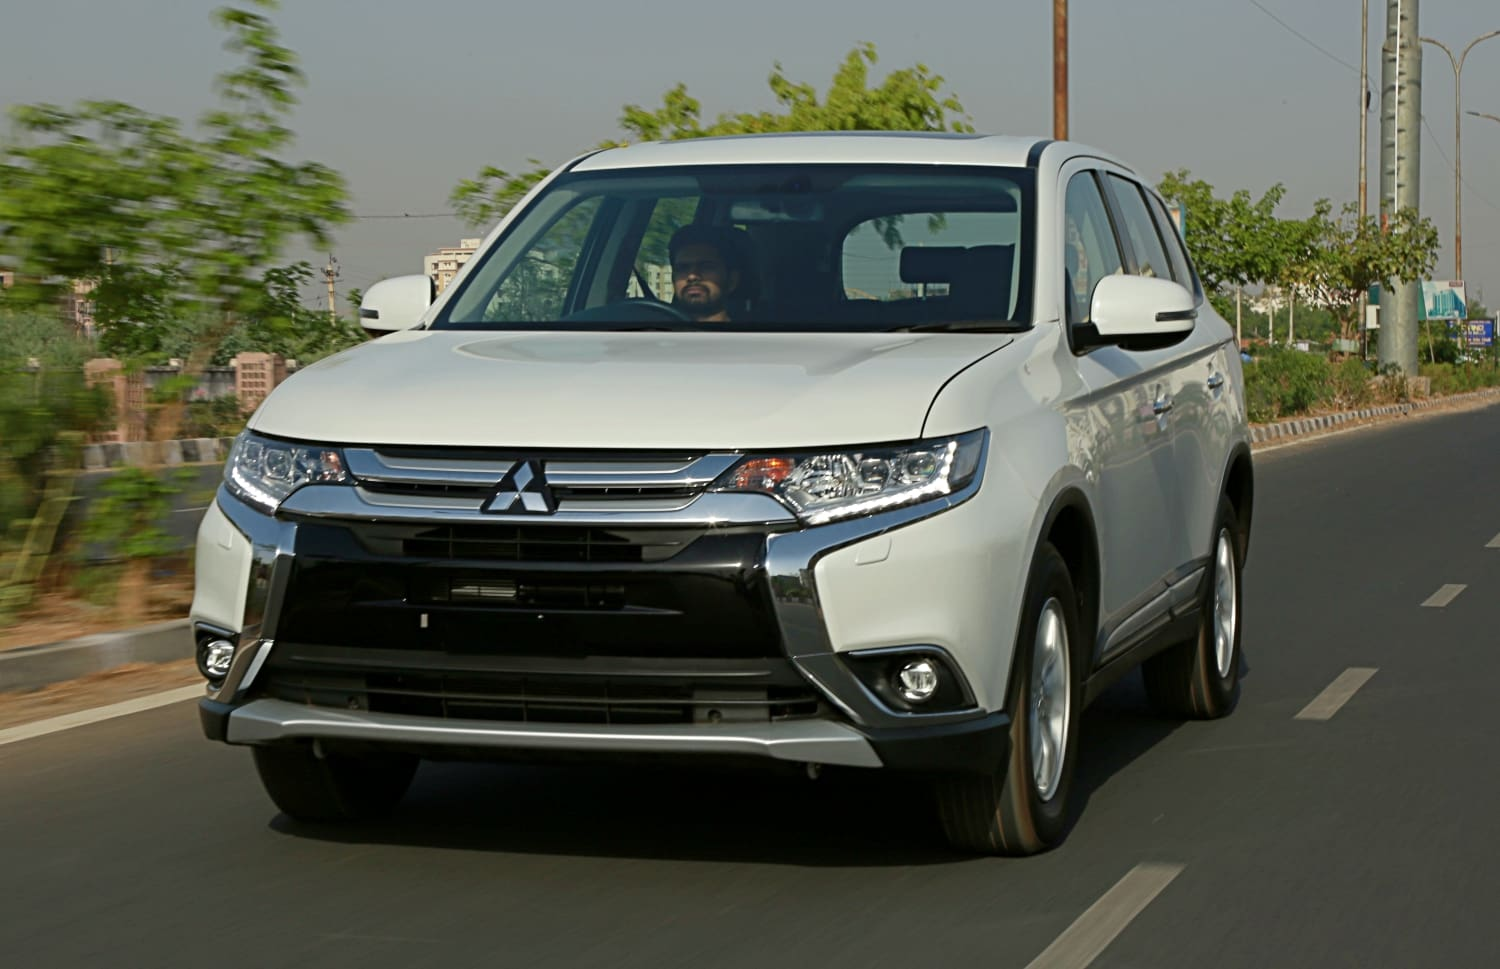 Mitsubishi Outlander: First Drive Review